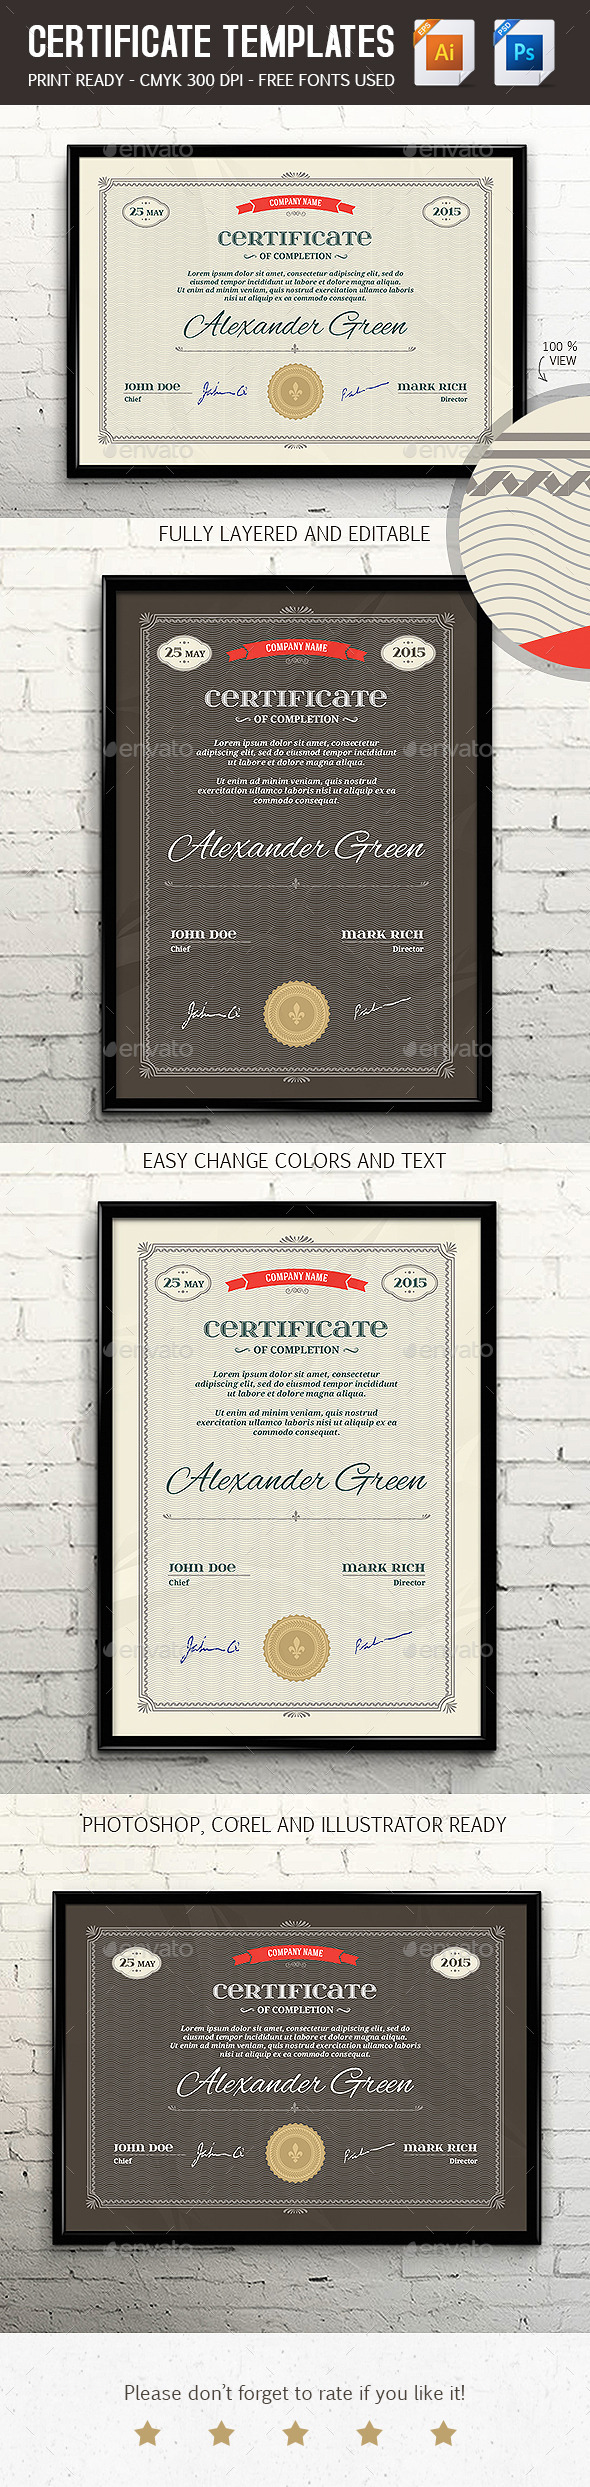 GraphicRiver Certificate Template PSD & EPS Print Ready 11218392